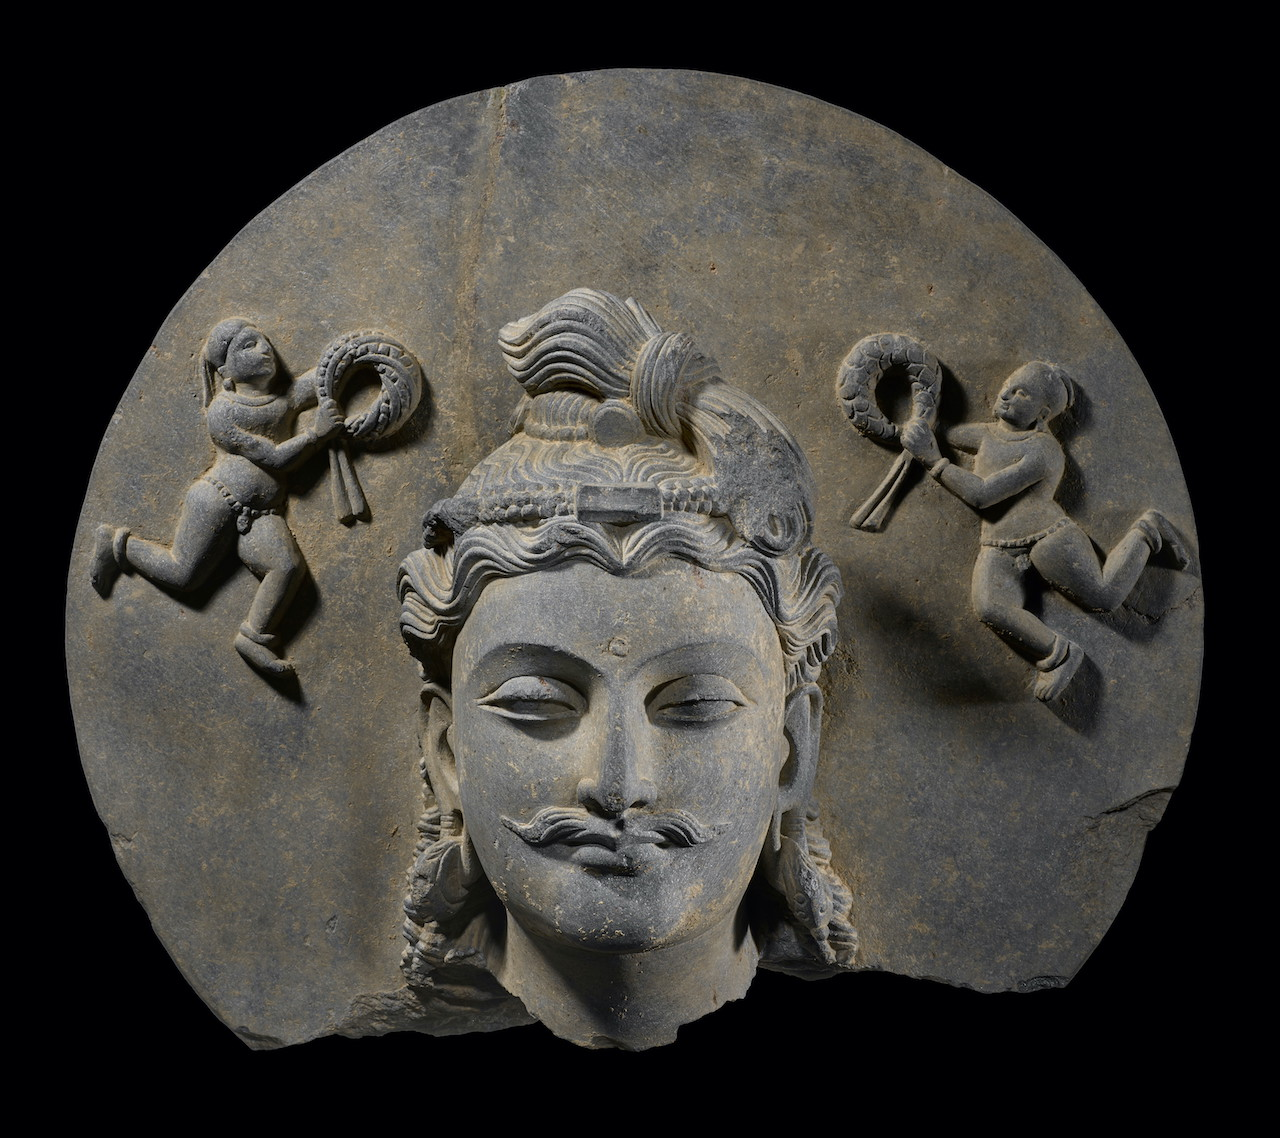 A stunning head of the Future Buddha, Maitreya, dates from the 3rd/4th century